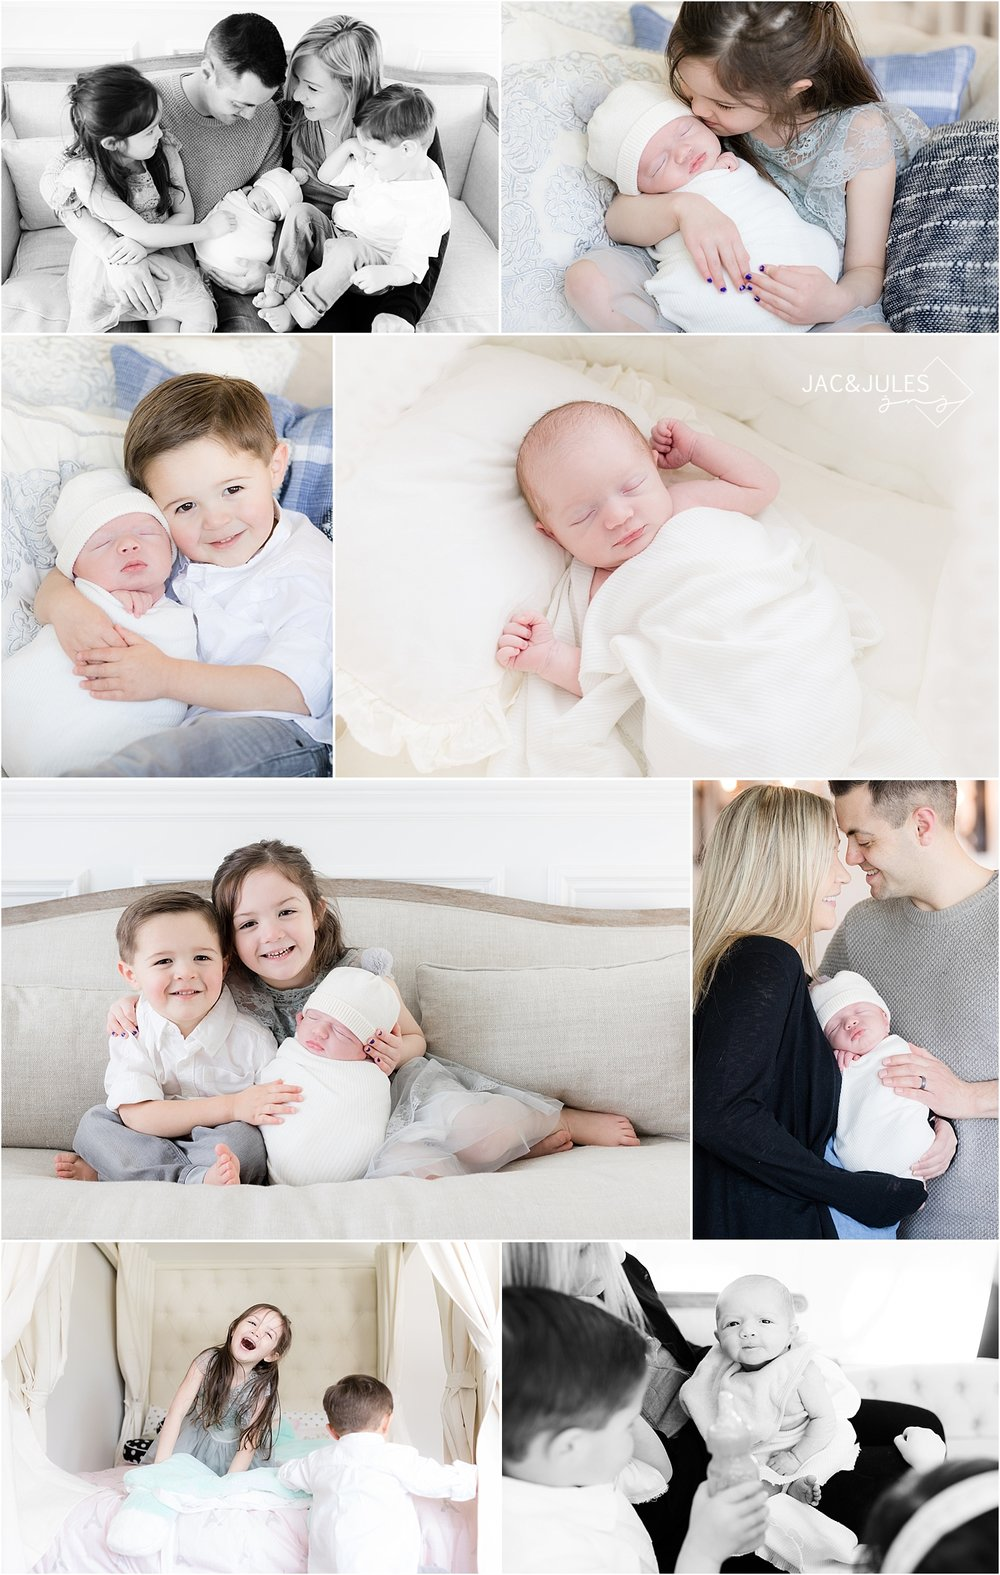 lifestyle newborn photography by jacnjules in nj